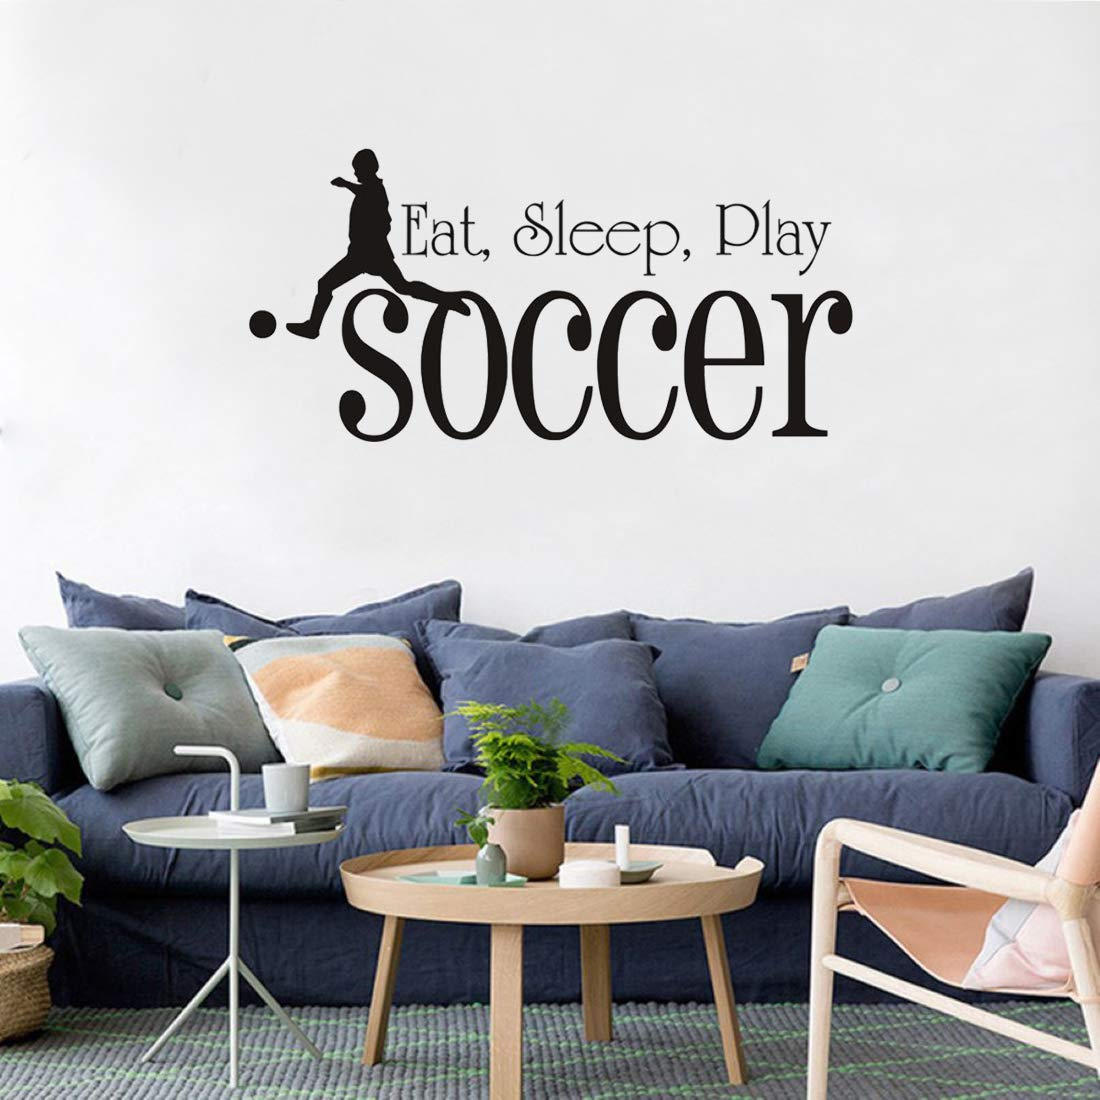 Eat Sleep Play Soccer Wall Stickers Boy Playing Football Wall Decals for Boys Room Kids Room Nursery Living Room Home Decoration